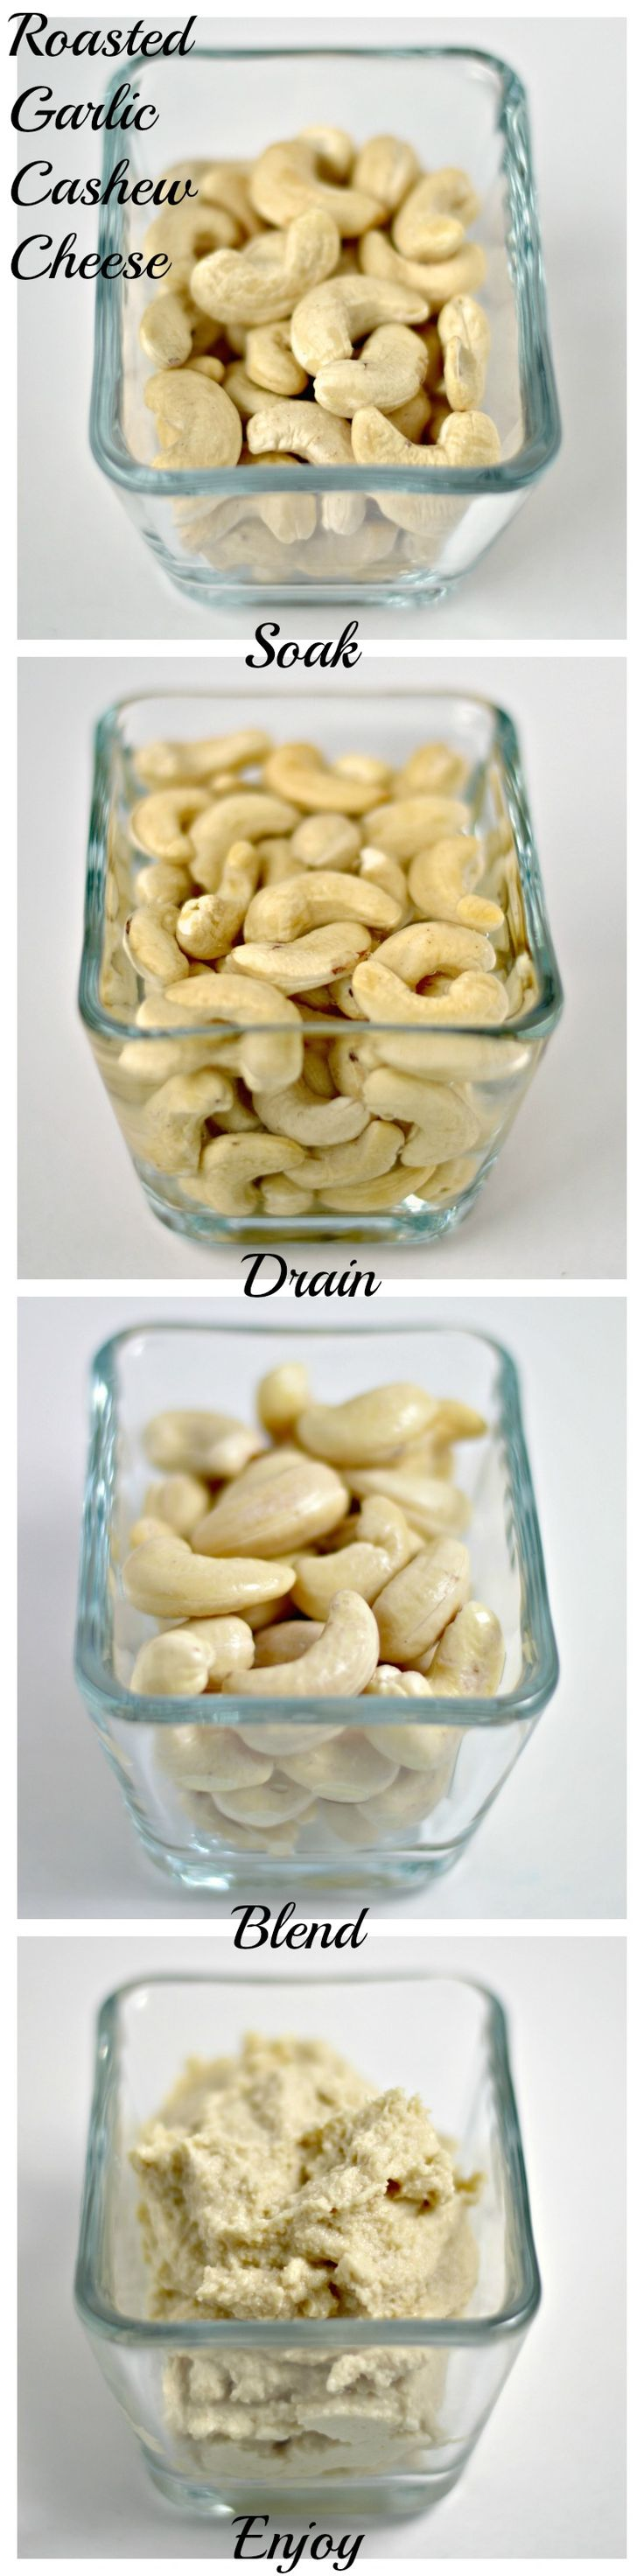 Snack Recipe: Cashew Cheese #vegan #recipes #raw #snacks #glutenfree #healthy #plantbased #whatveganseat